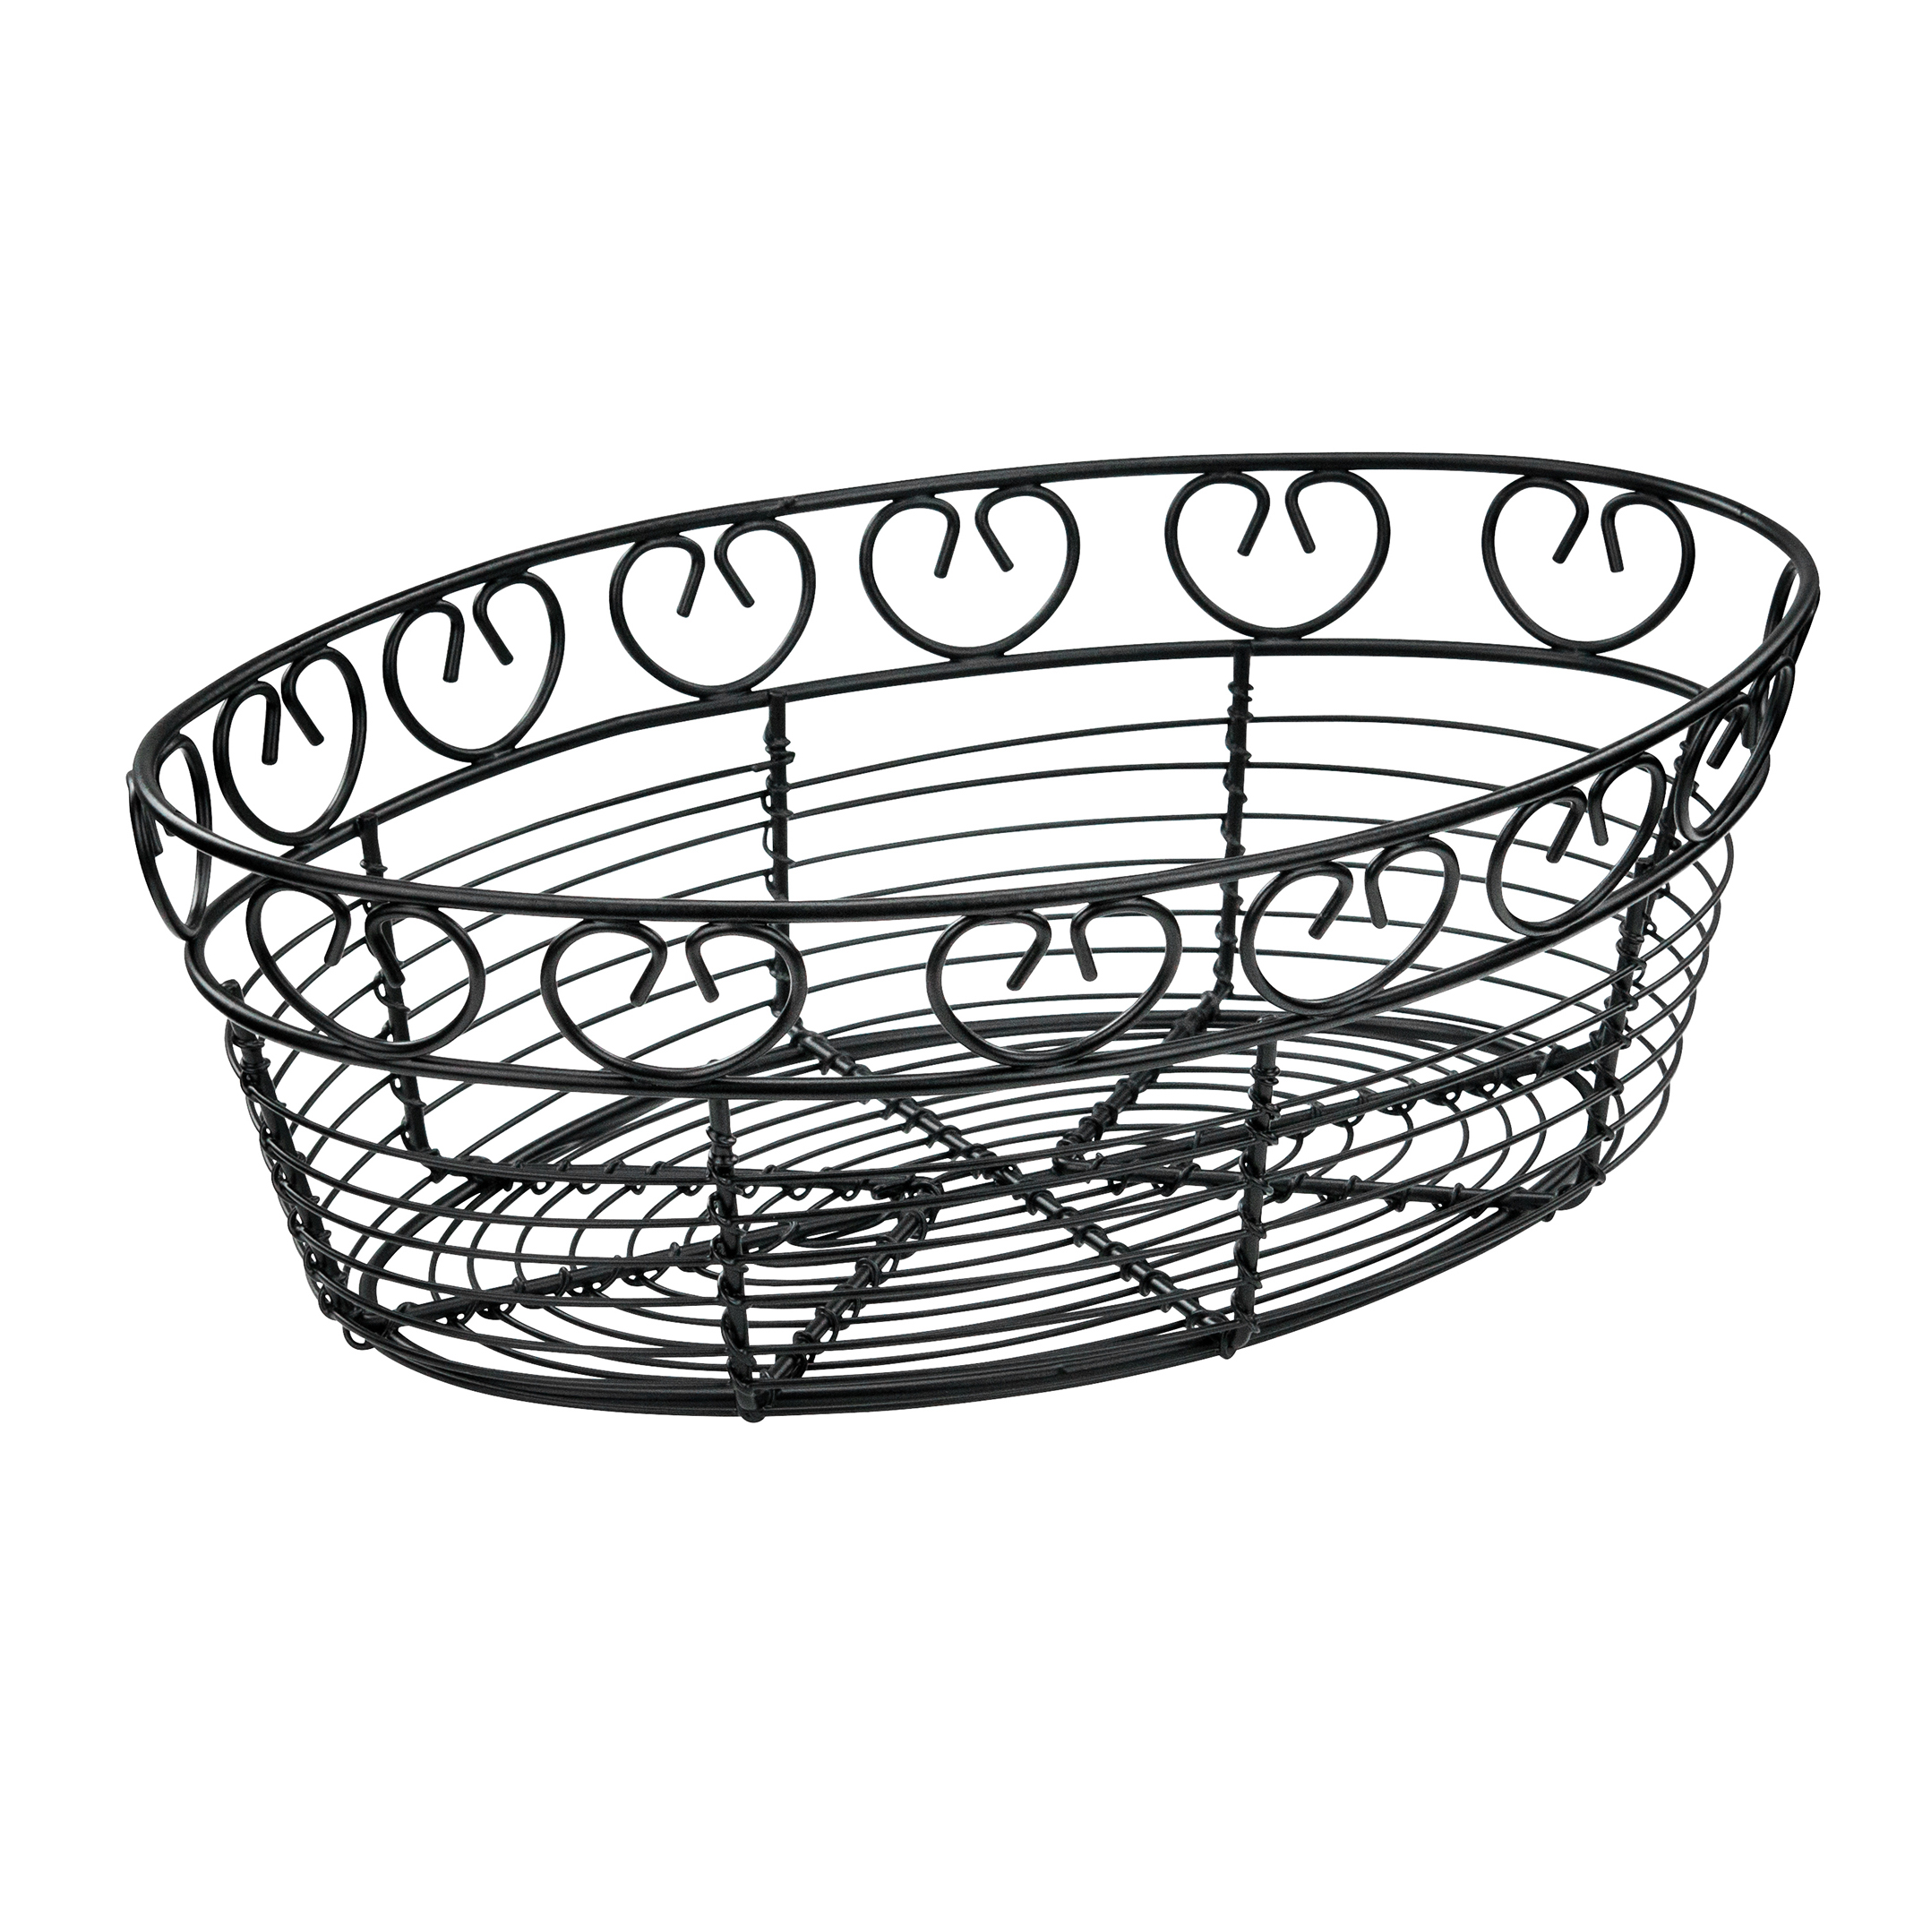 Winco WBKG-10O basket, tabletop, metal